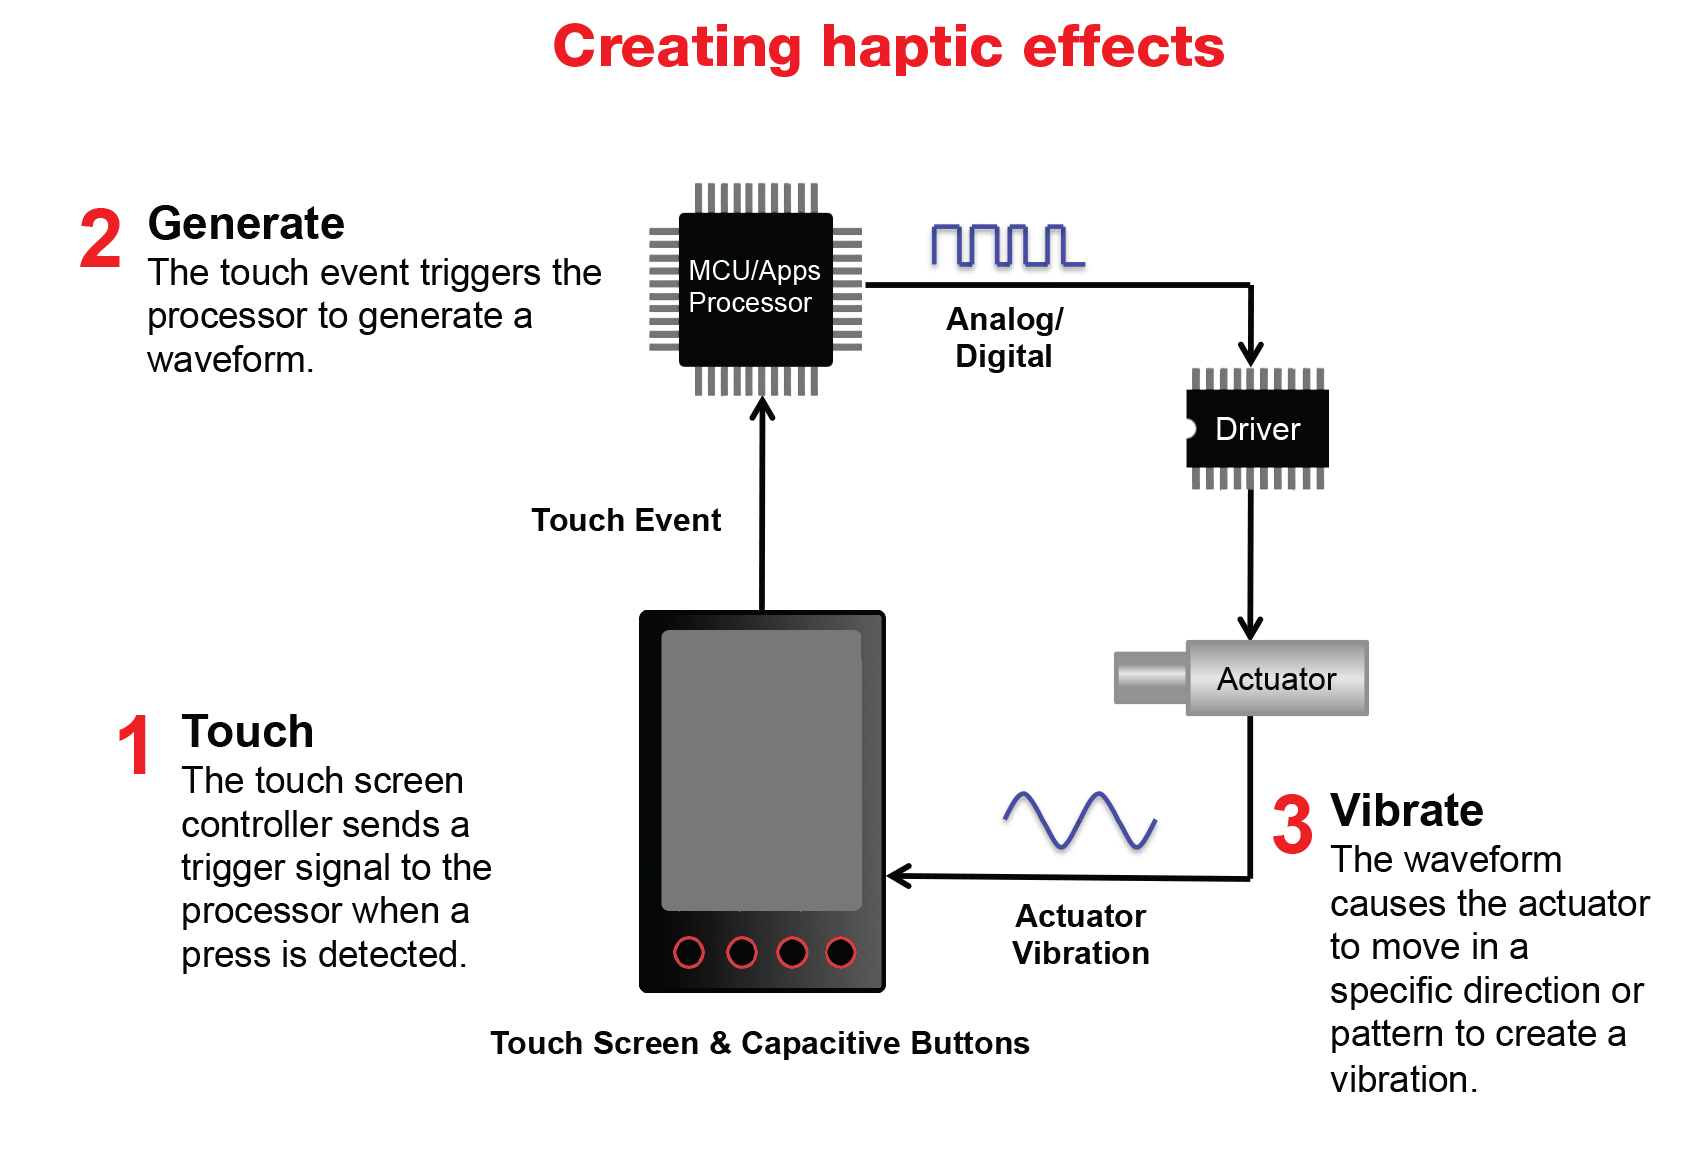 haptic interfaces benefits and usage essay Haptic rendering is process of displaying synthetically generated 2d/3d haptic stimuli to the user the haptic interface acts as a two-port system terminated on one side by the human operator and on the other side by the virtual environment.